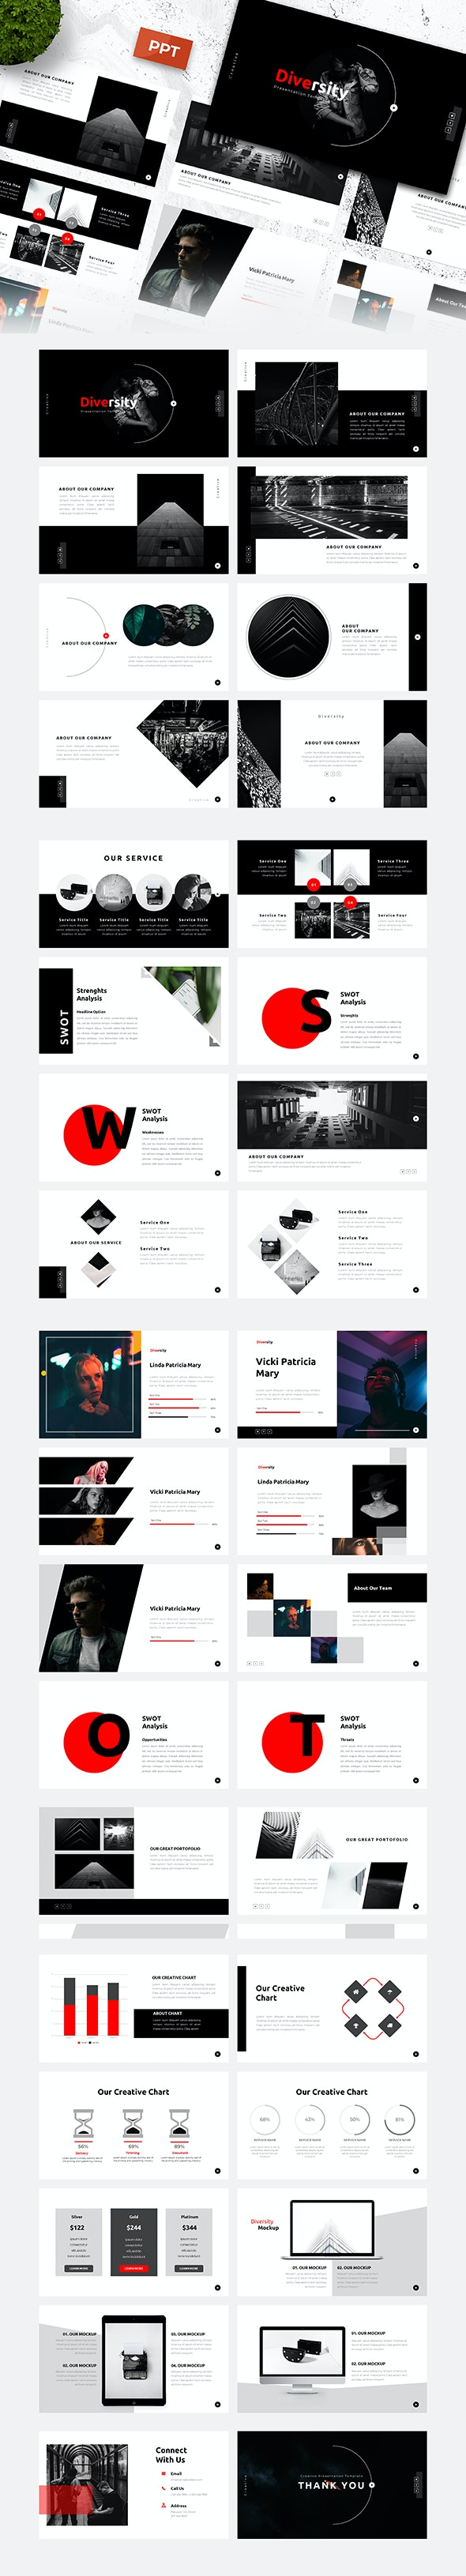 Diversity Creative Power Point Template By Yossy1